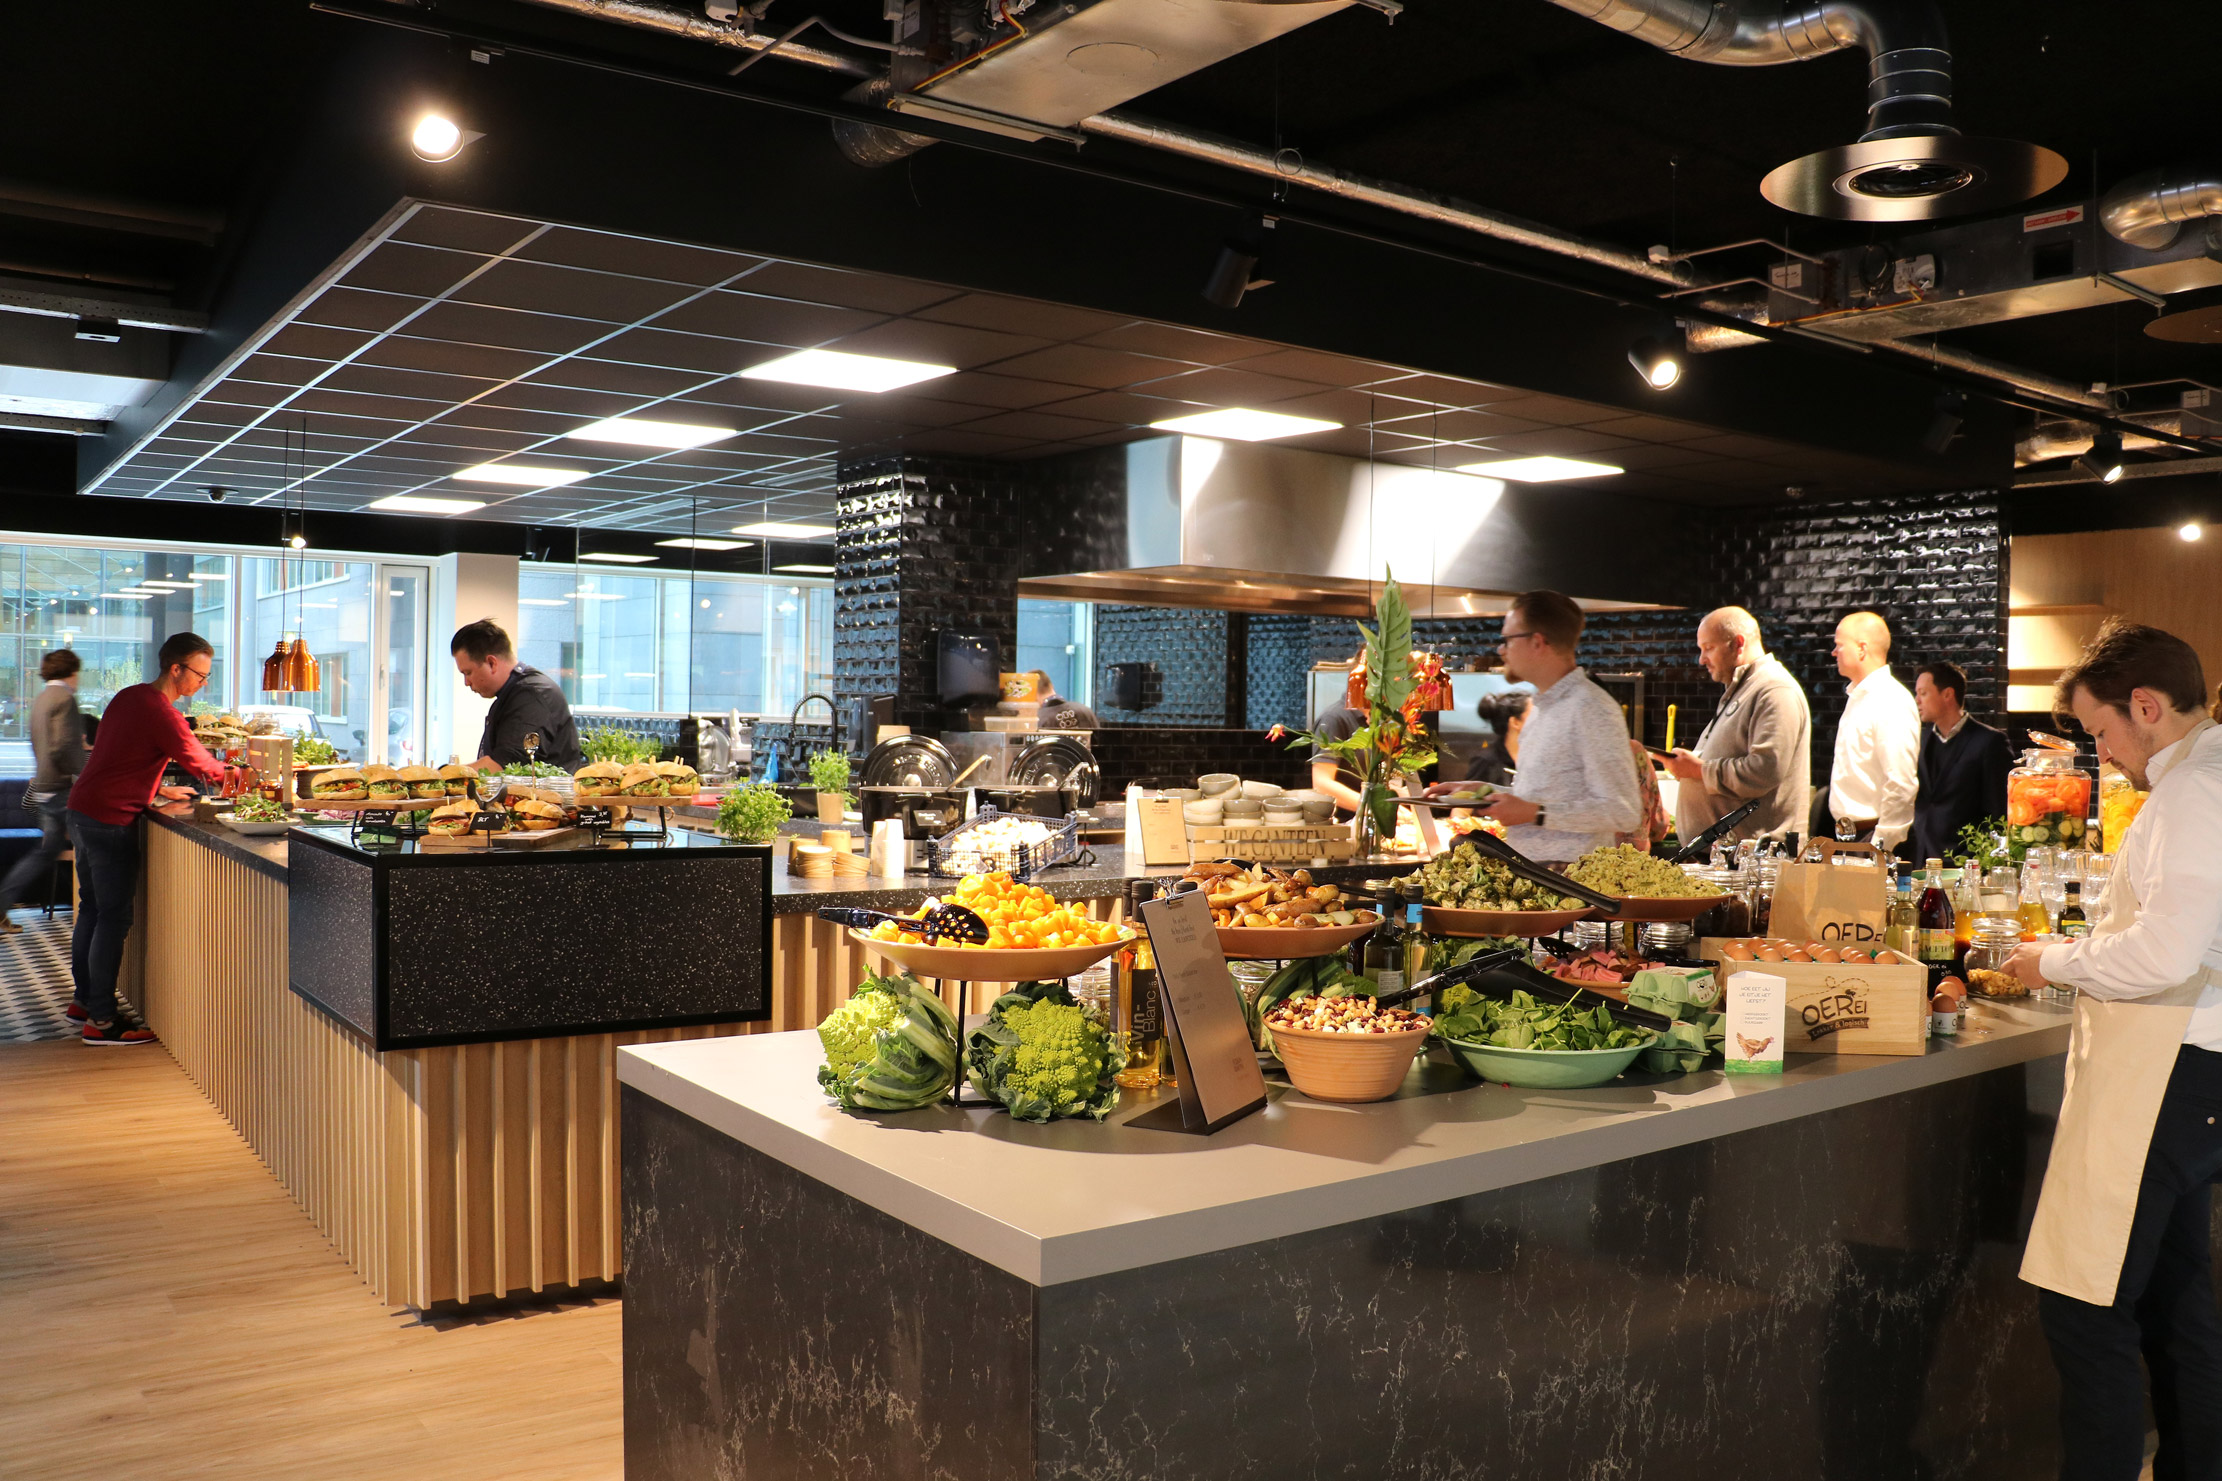 Foodcourt + Keuken - Adam Smith Building - We Canteen